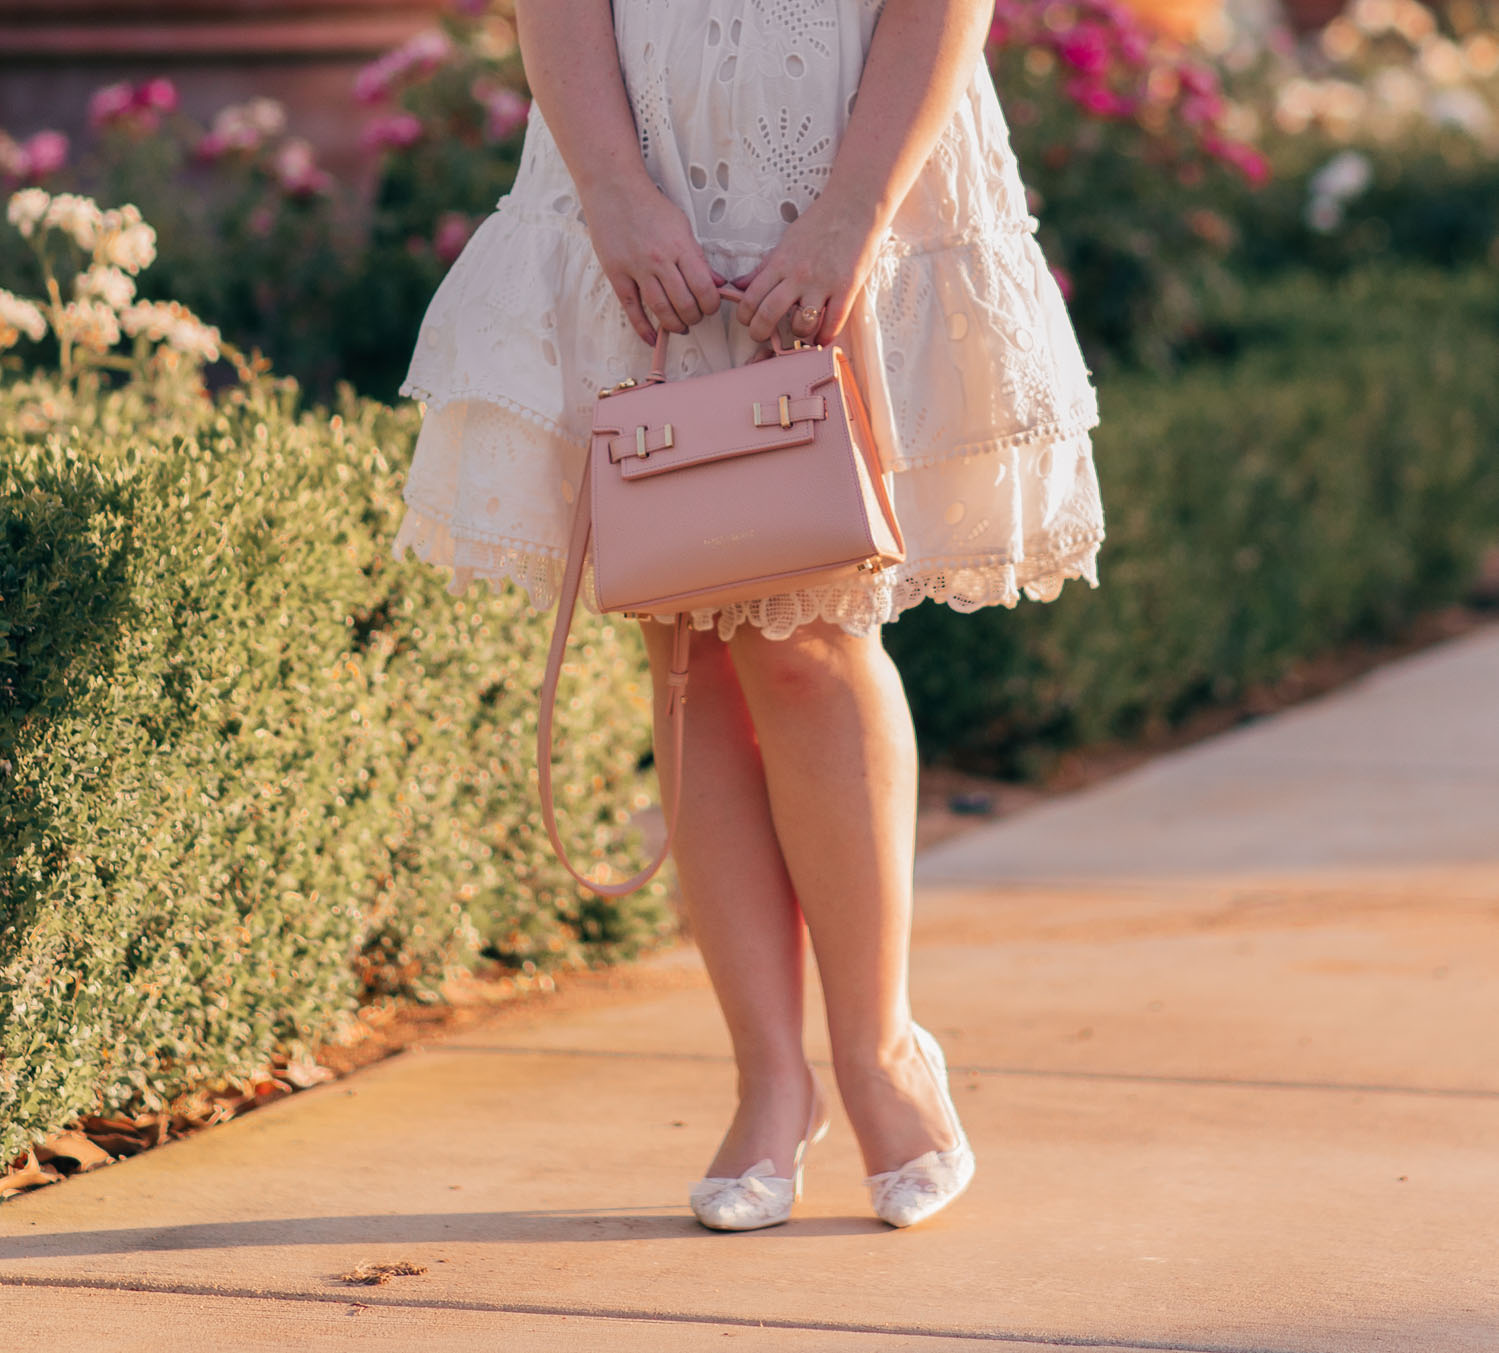 Feminine Fashion Blogger Elizabeth Hugen of Lizzie in Lace shares the perfect white summer dress from Chicwish and pink Teddy Blake handbag